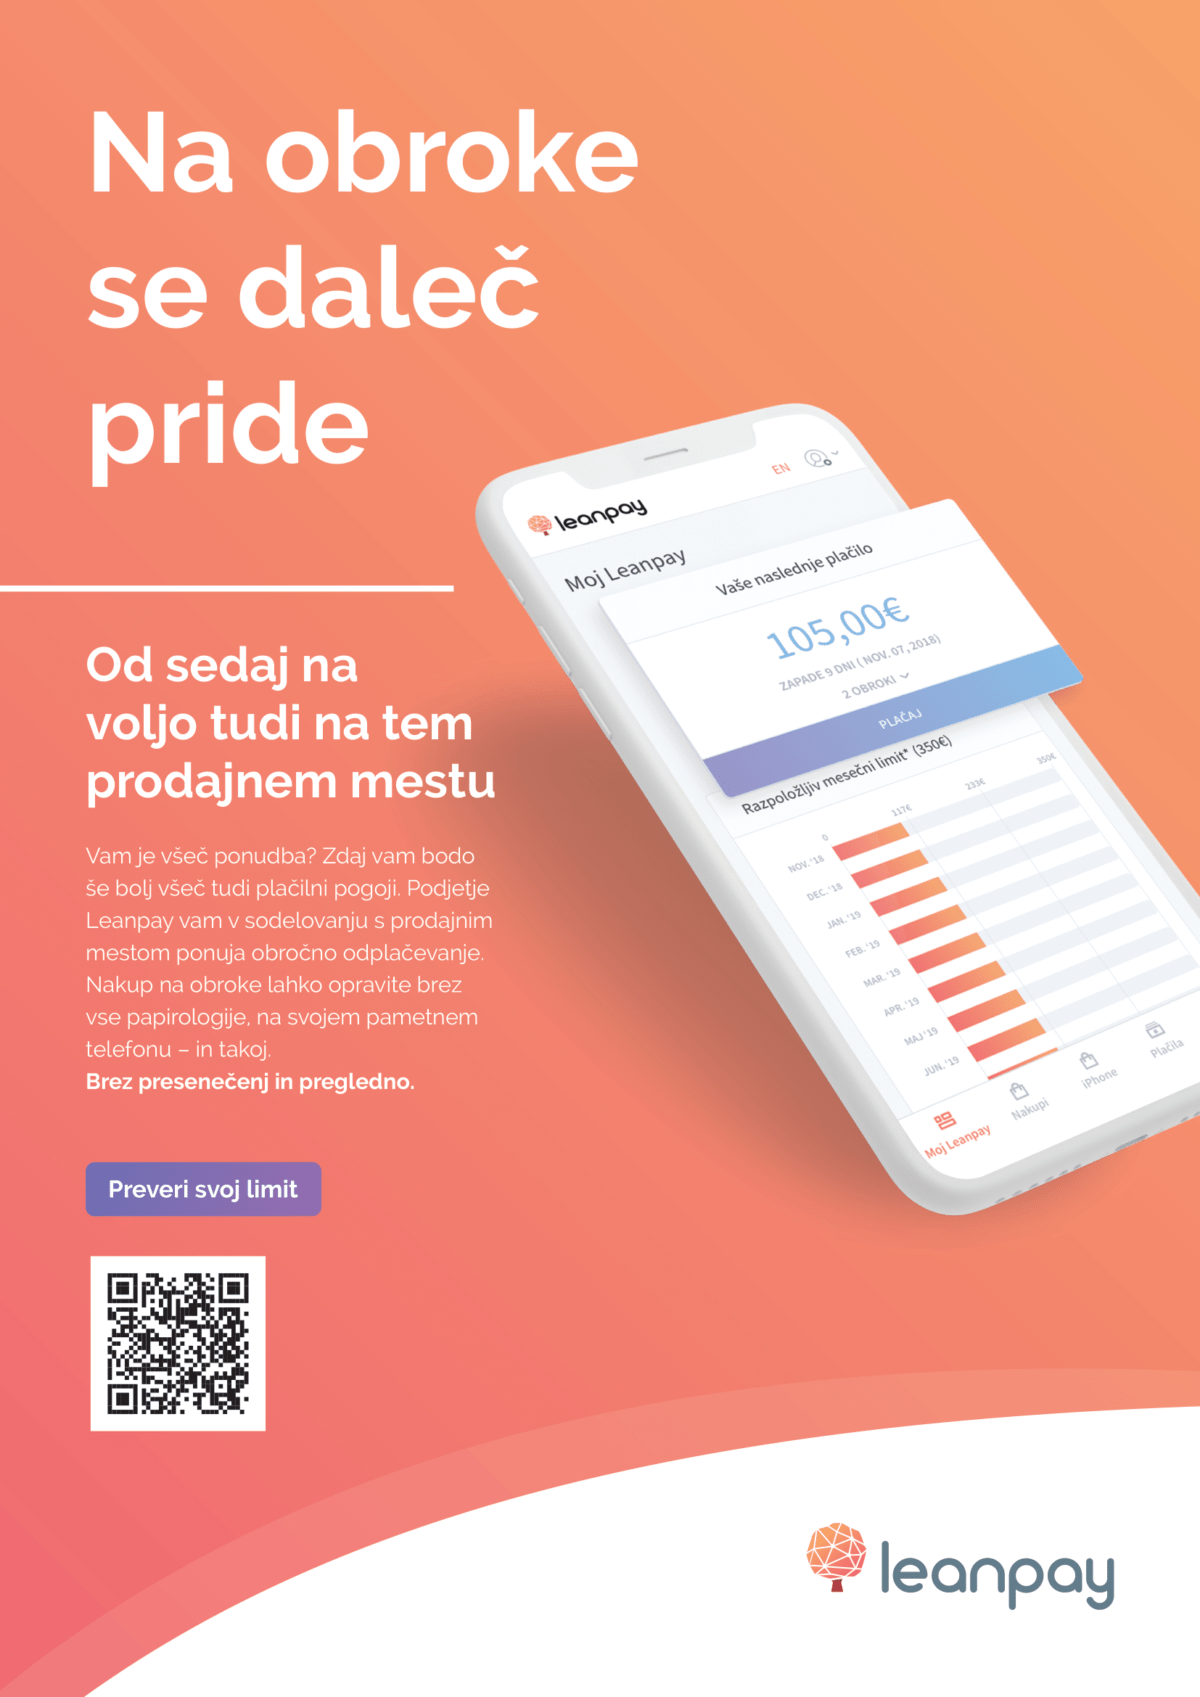 leanpay-2019-flyer_12_november_2019-REDNI-1-1-1-1200x1697